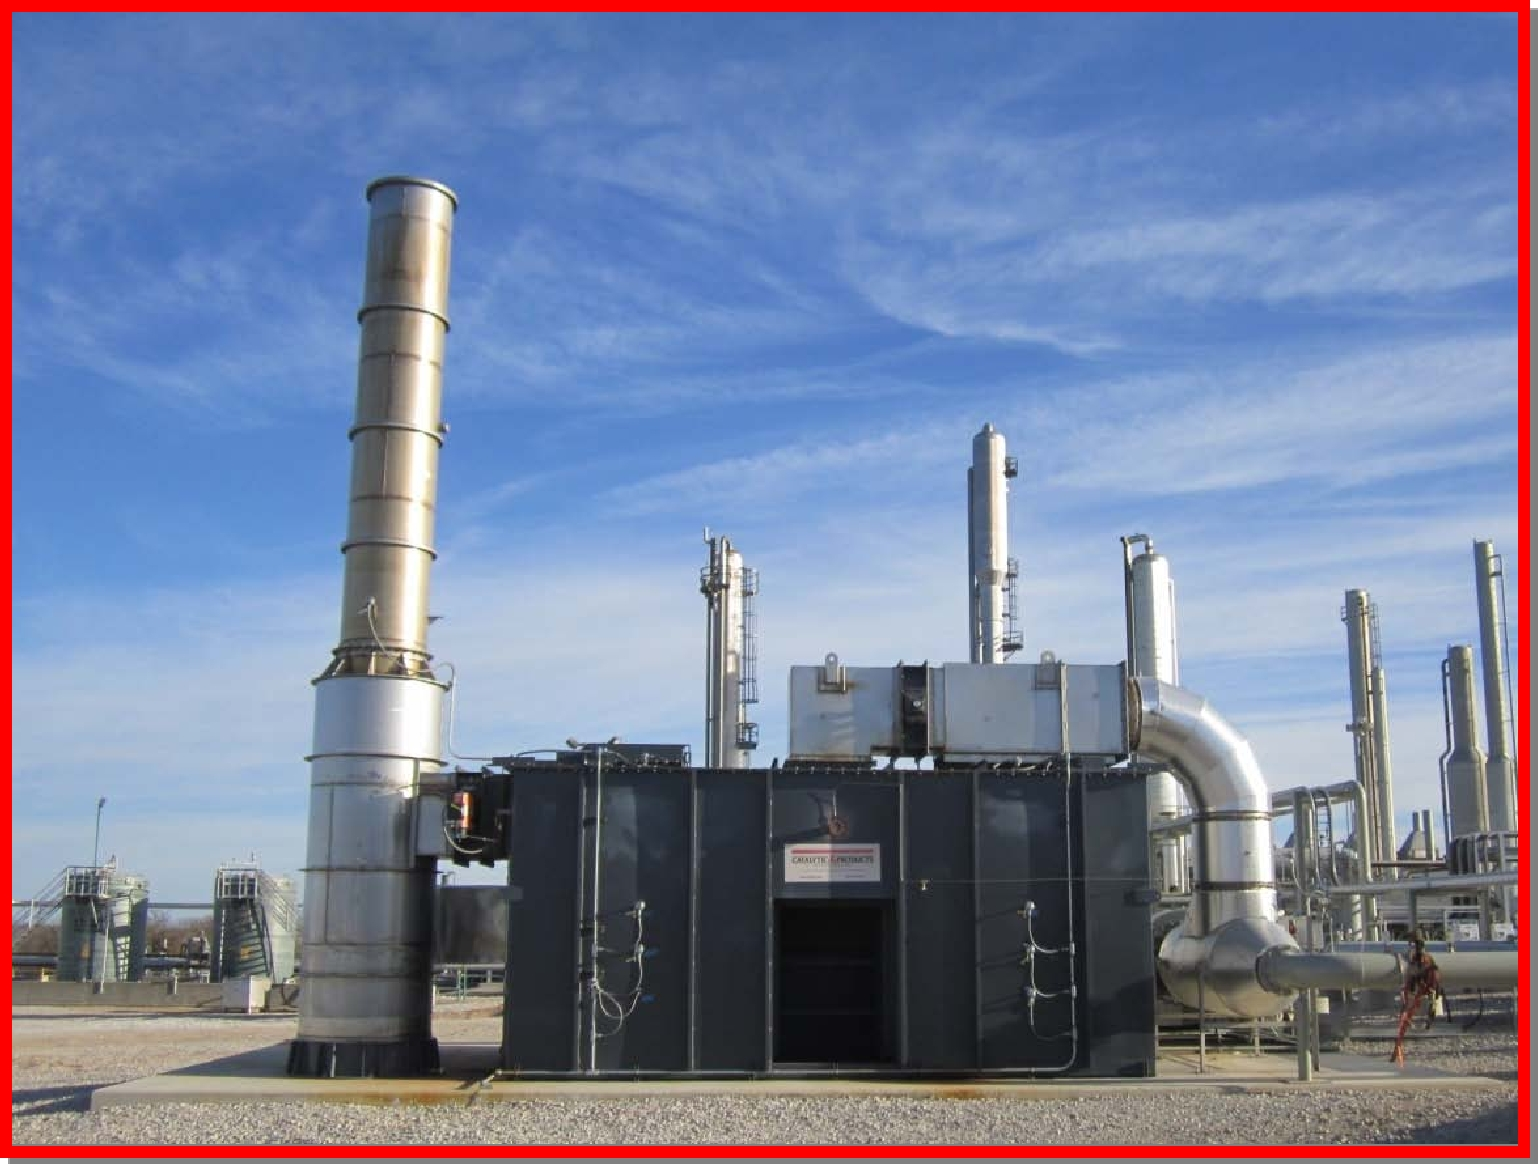 TRITON Series Regenerative Thermal Oxidizer